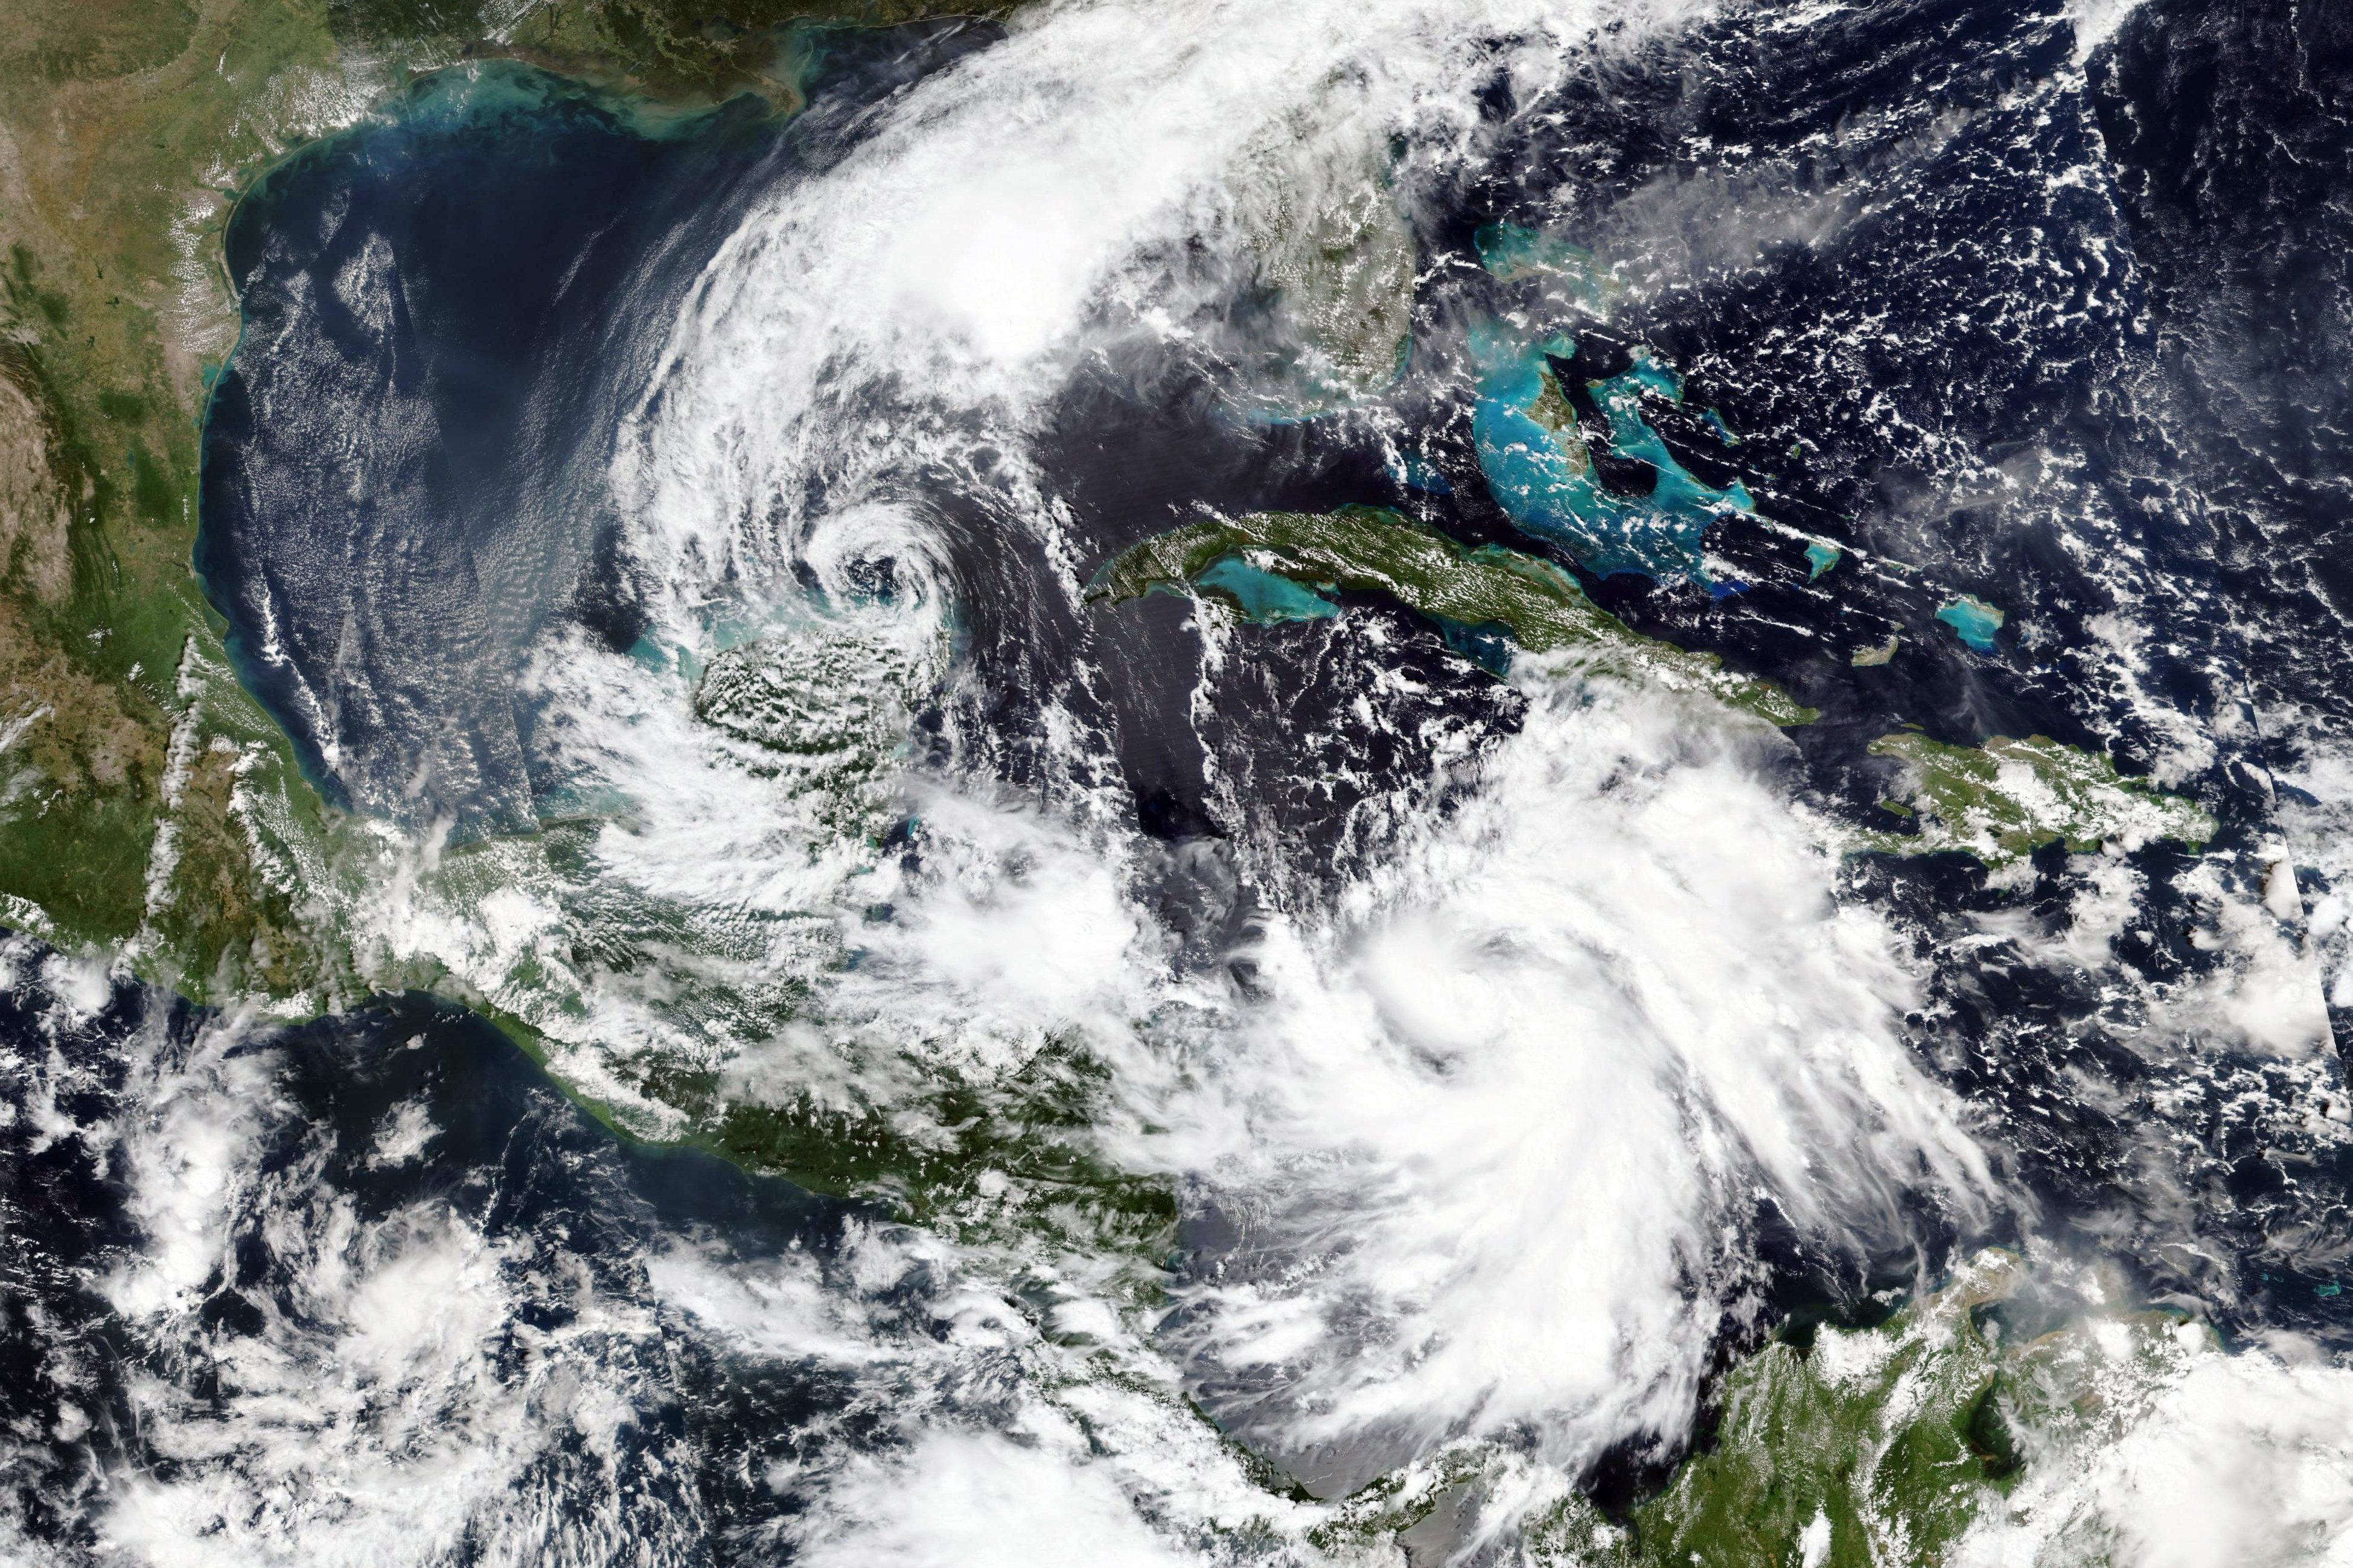 This Monday, Oct. 5, 2020, satellite image released by NASA Worldview, Earth Observing System Data and Information System (EOSDIS) shows Tropical Storm Gamma, left, which soaked part of Mexico over the weekend and a strengthening Hurricane Delta, lower right, which is on a course to pass by the Cayman Islands early Tuesday.